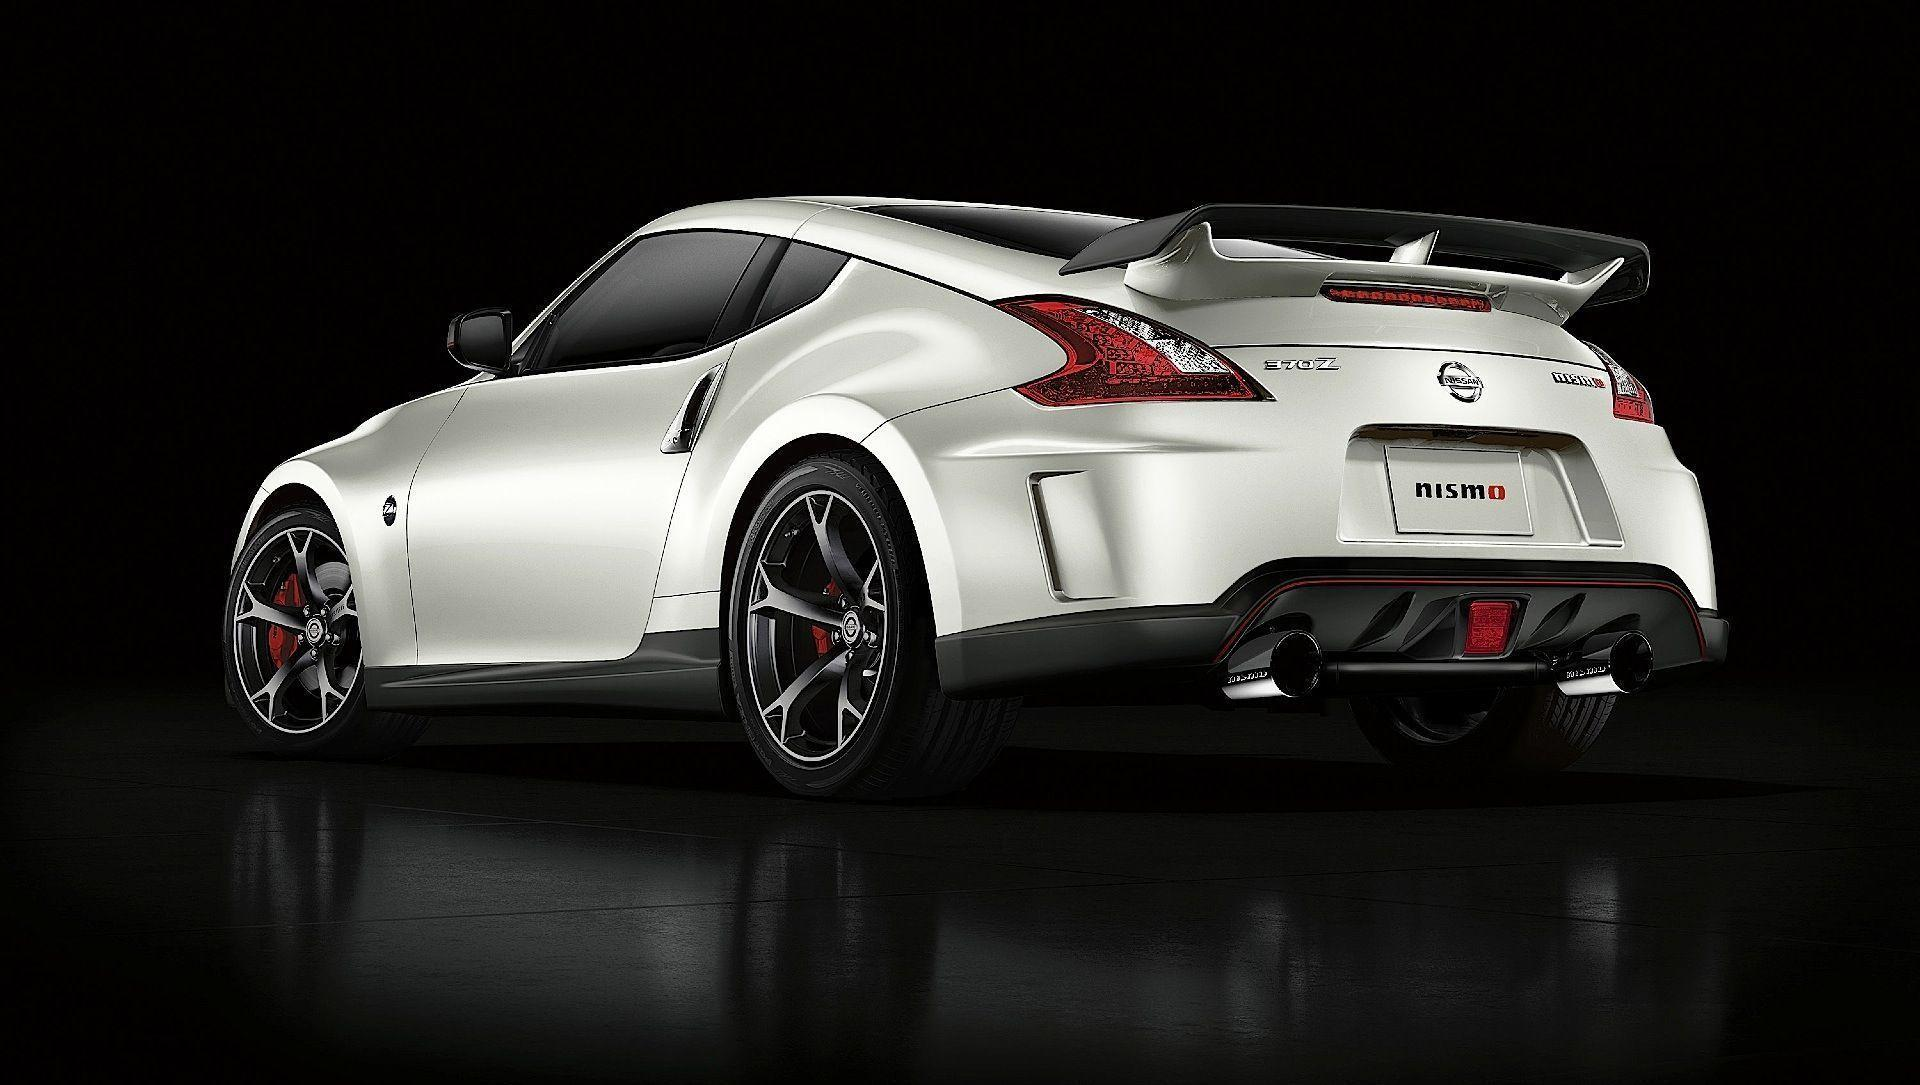 370z Nismo Wallpapers Wallpaper Cave